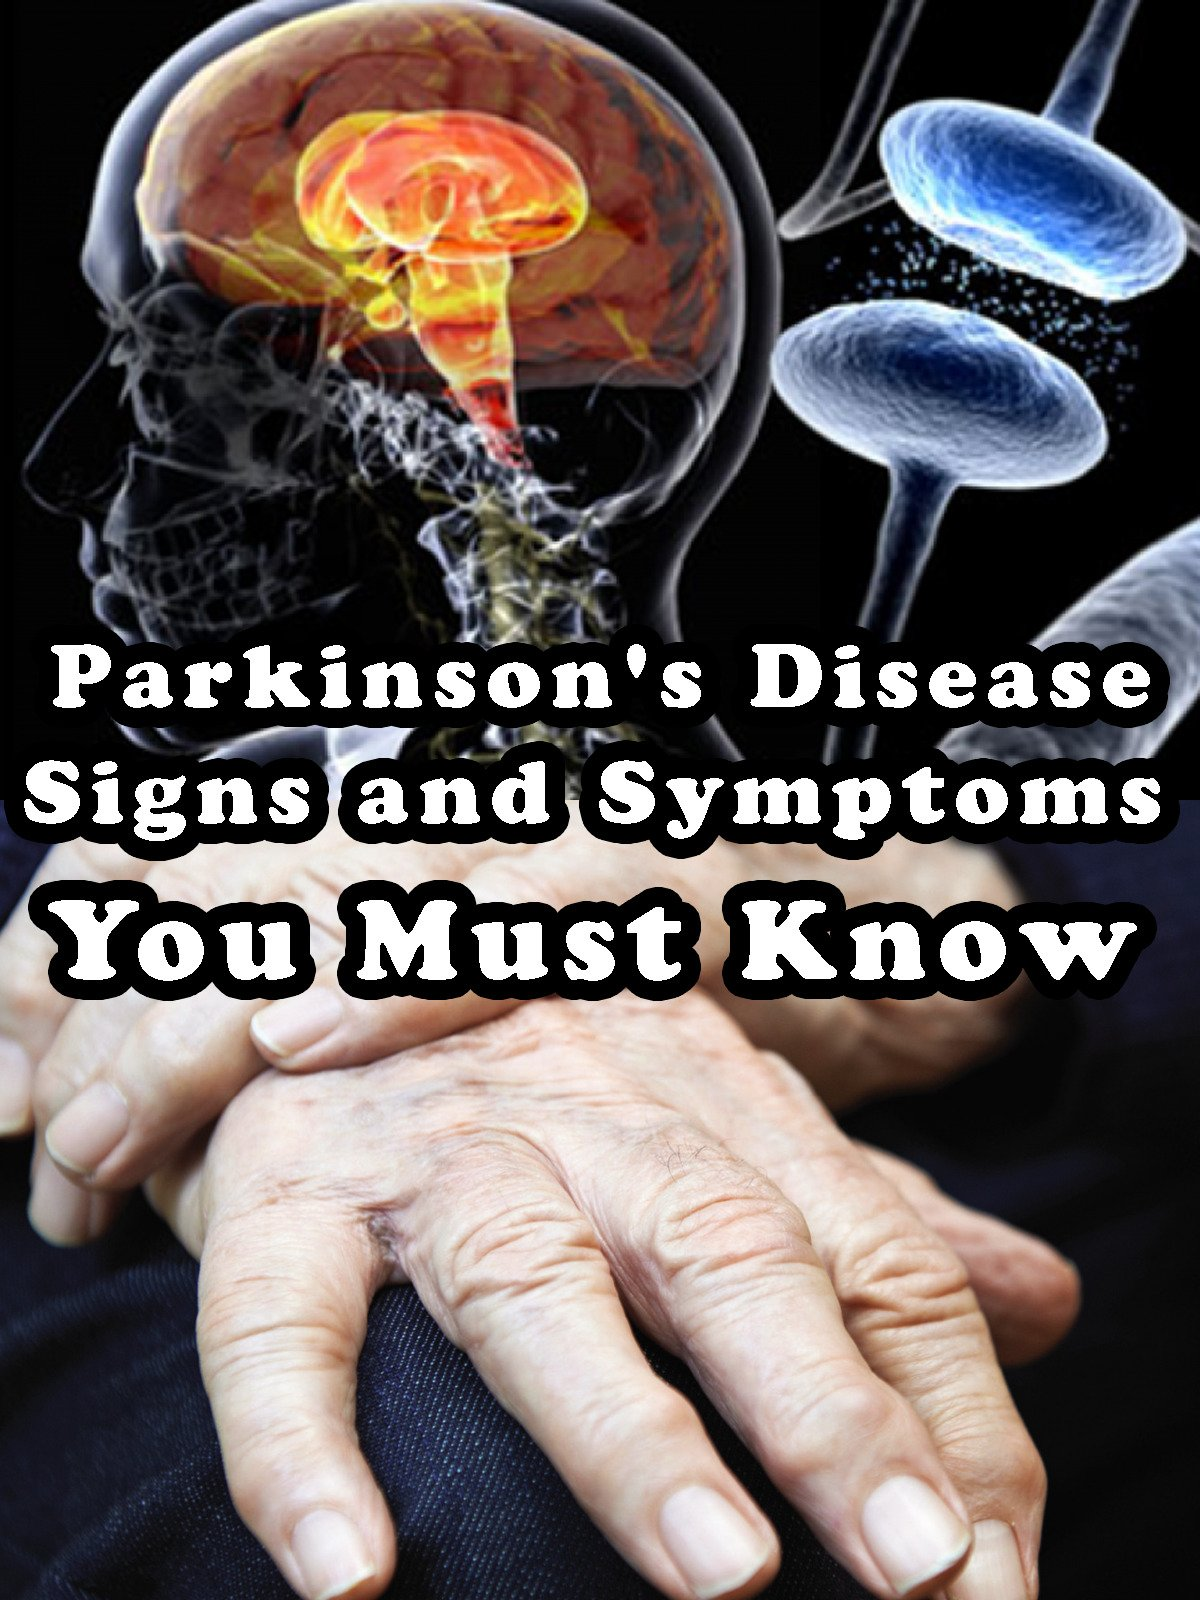 Parkinson's Disease - Signs and Symptoms You Must Know